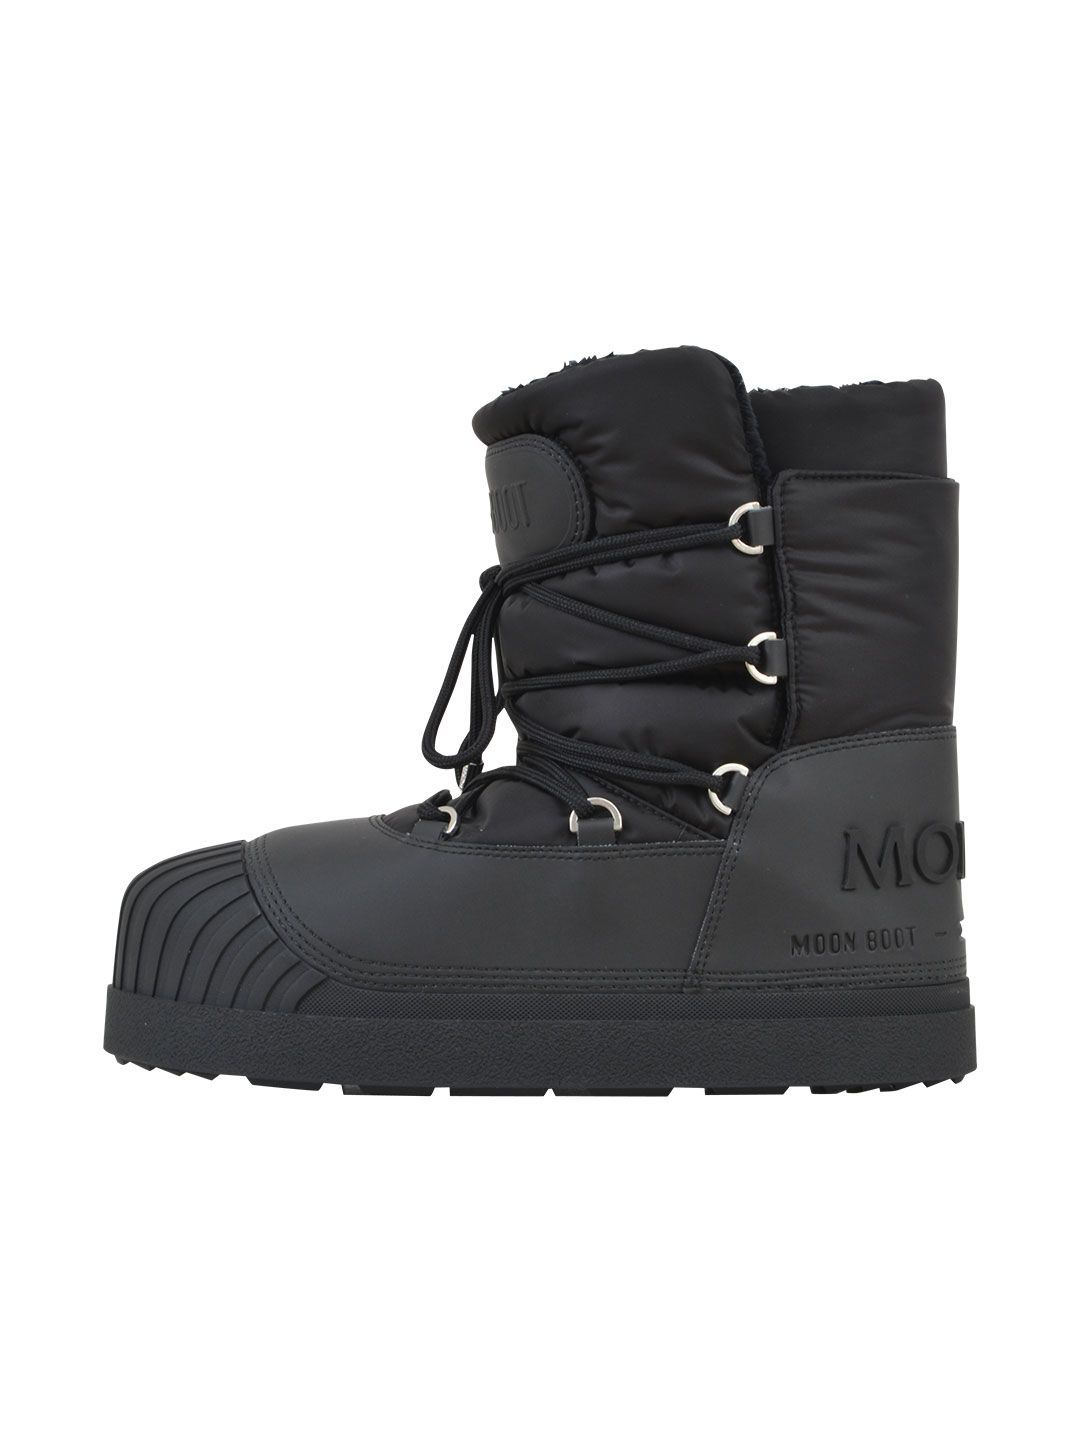 67d1fb6eacc9b MONCLER MOON BOOT ANKLE SNOW BOOTS.  moncler  shoes